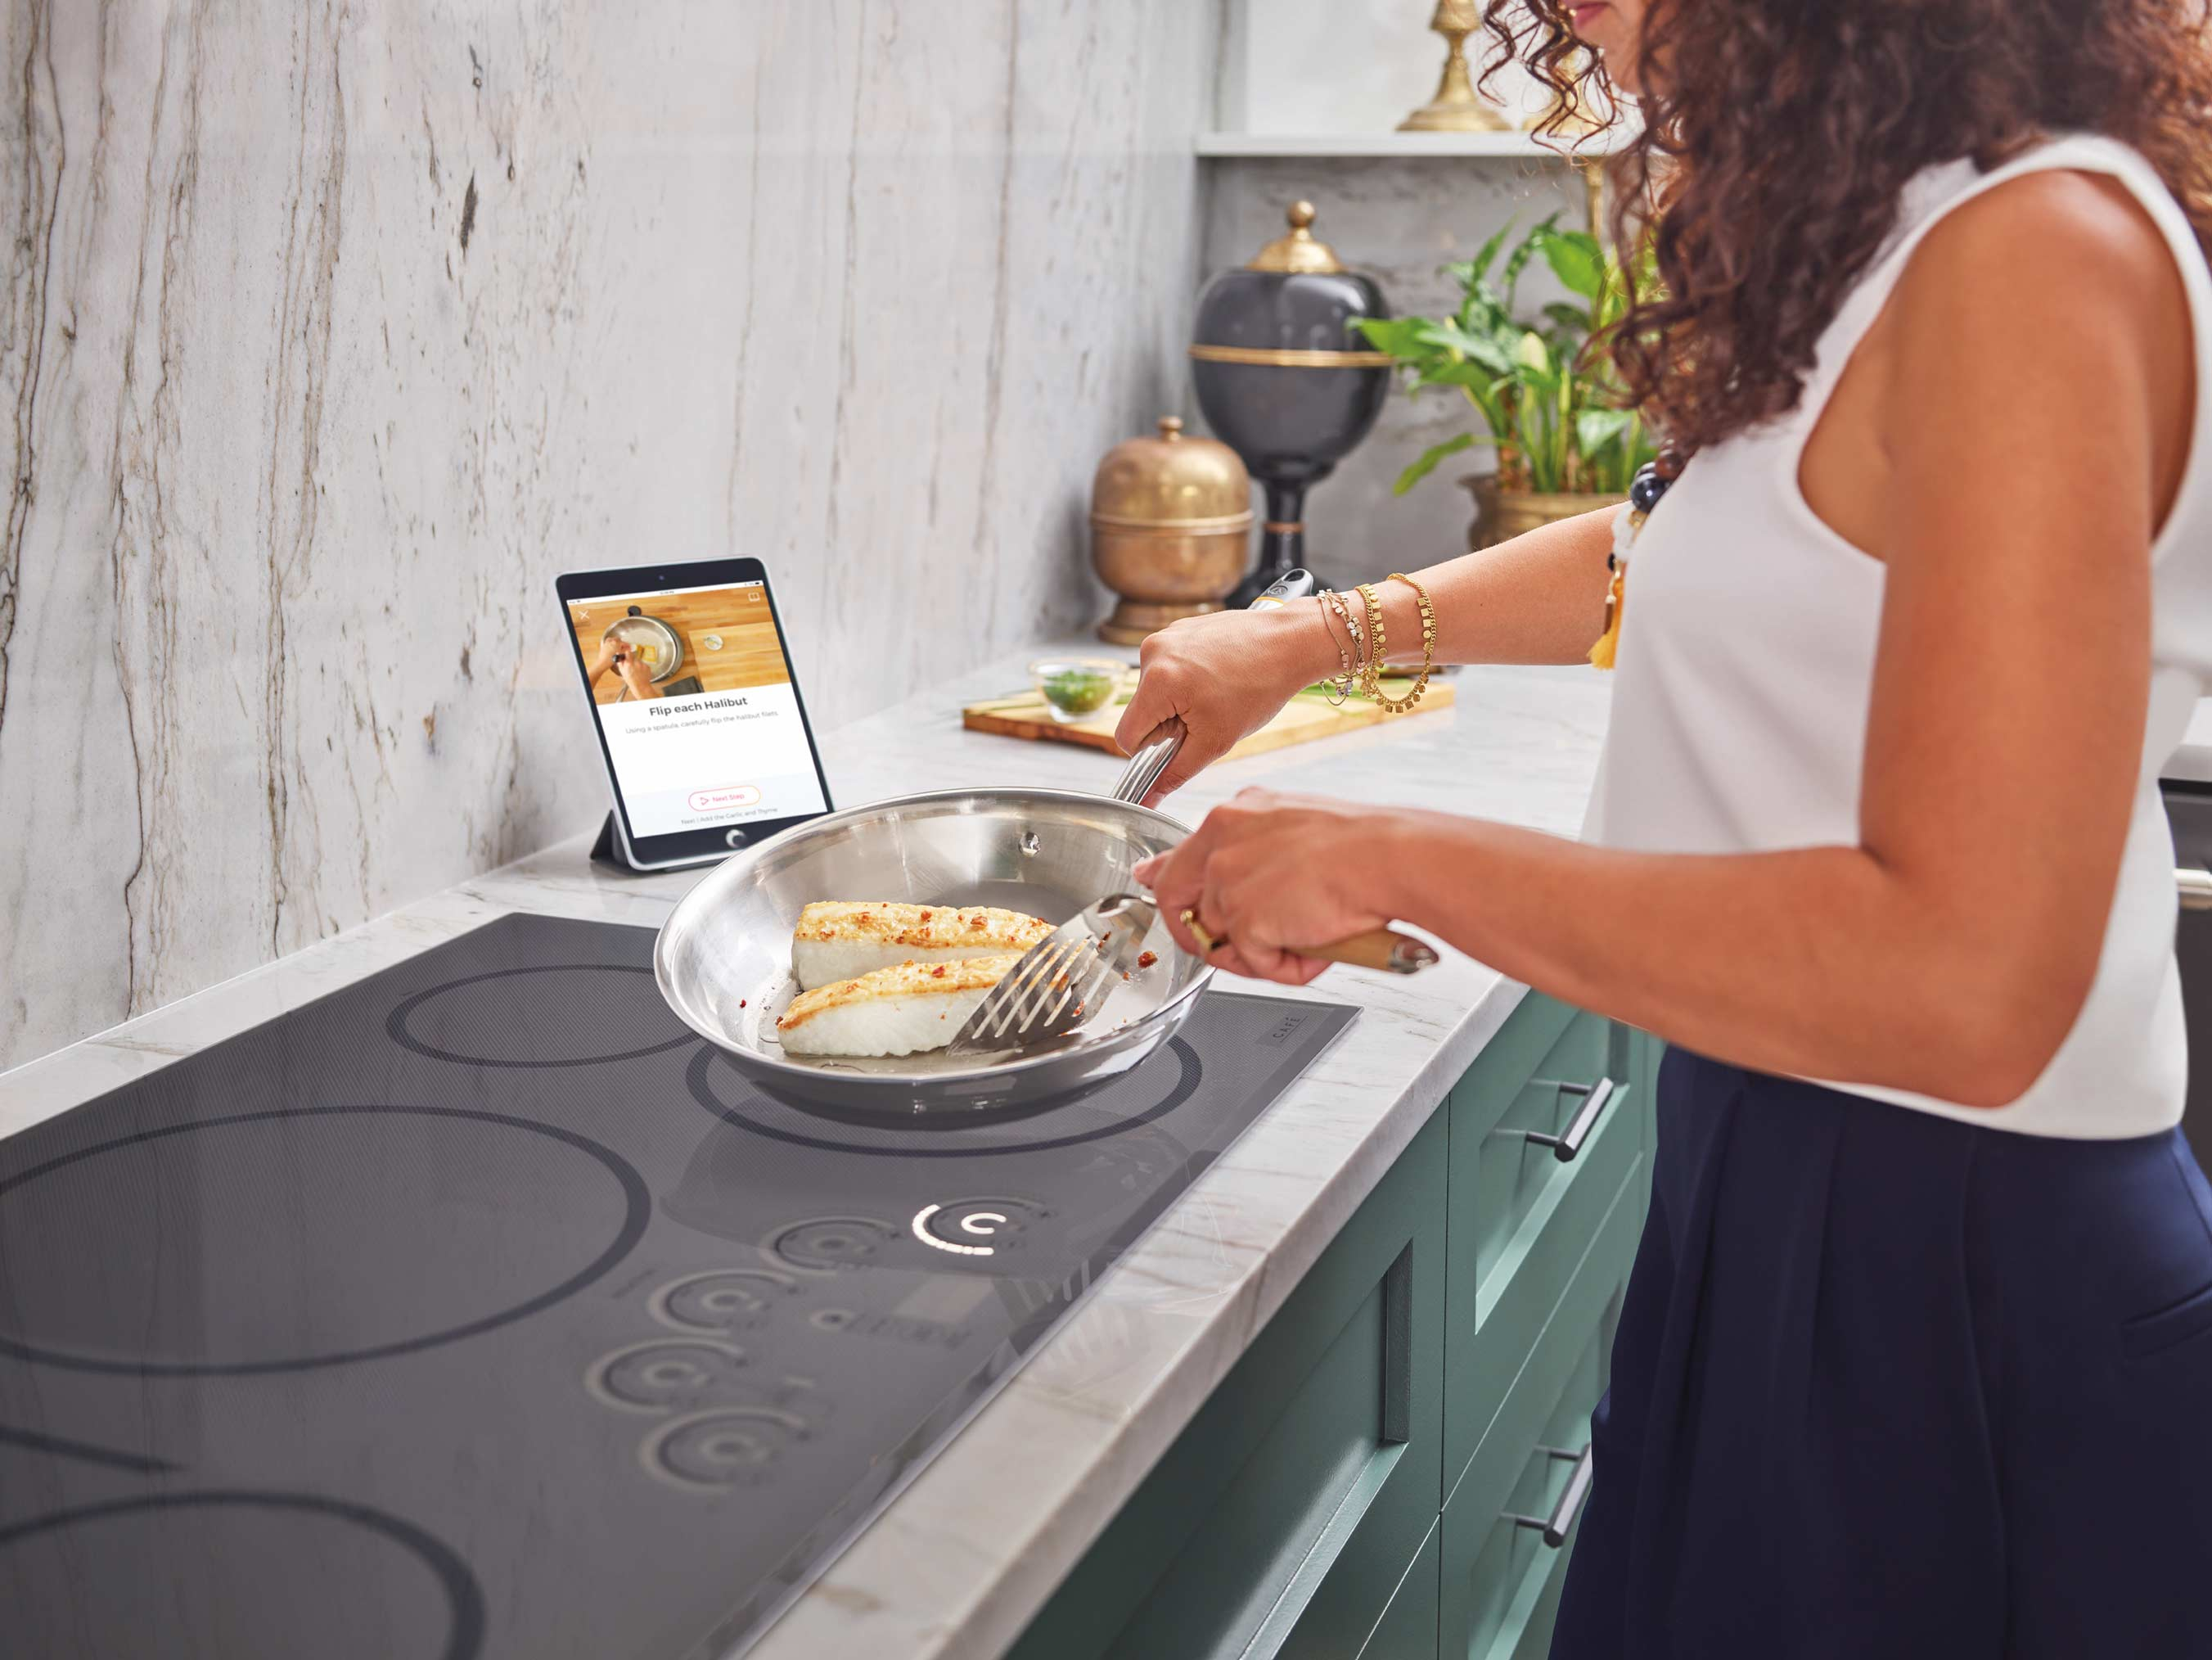 Upgrade to a Smart Home with Southeast Steel